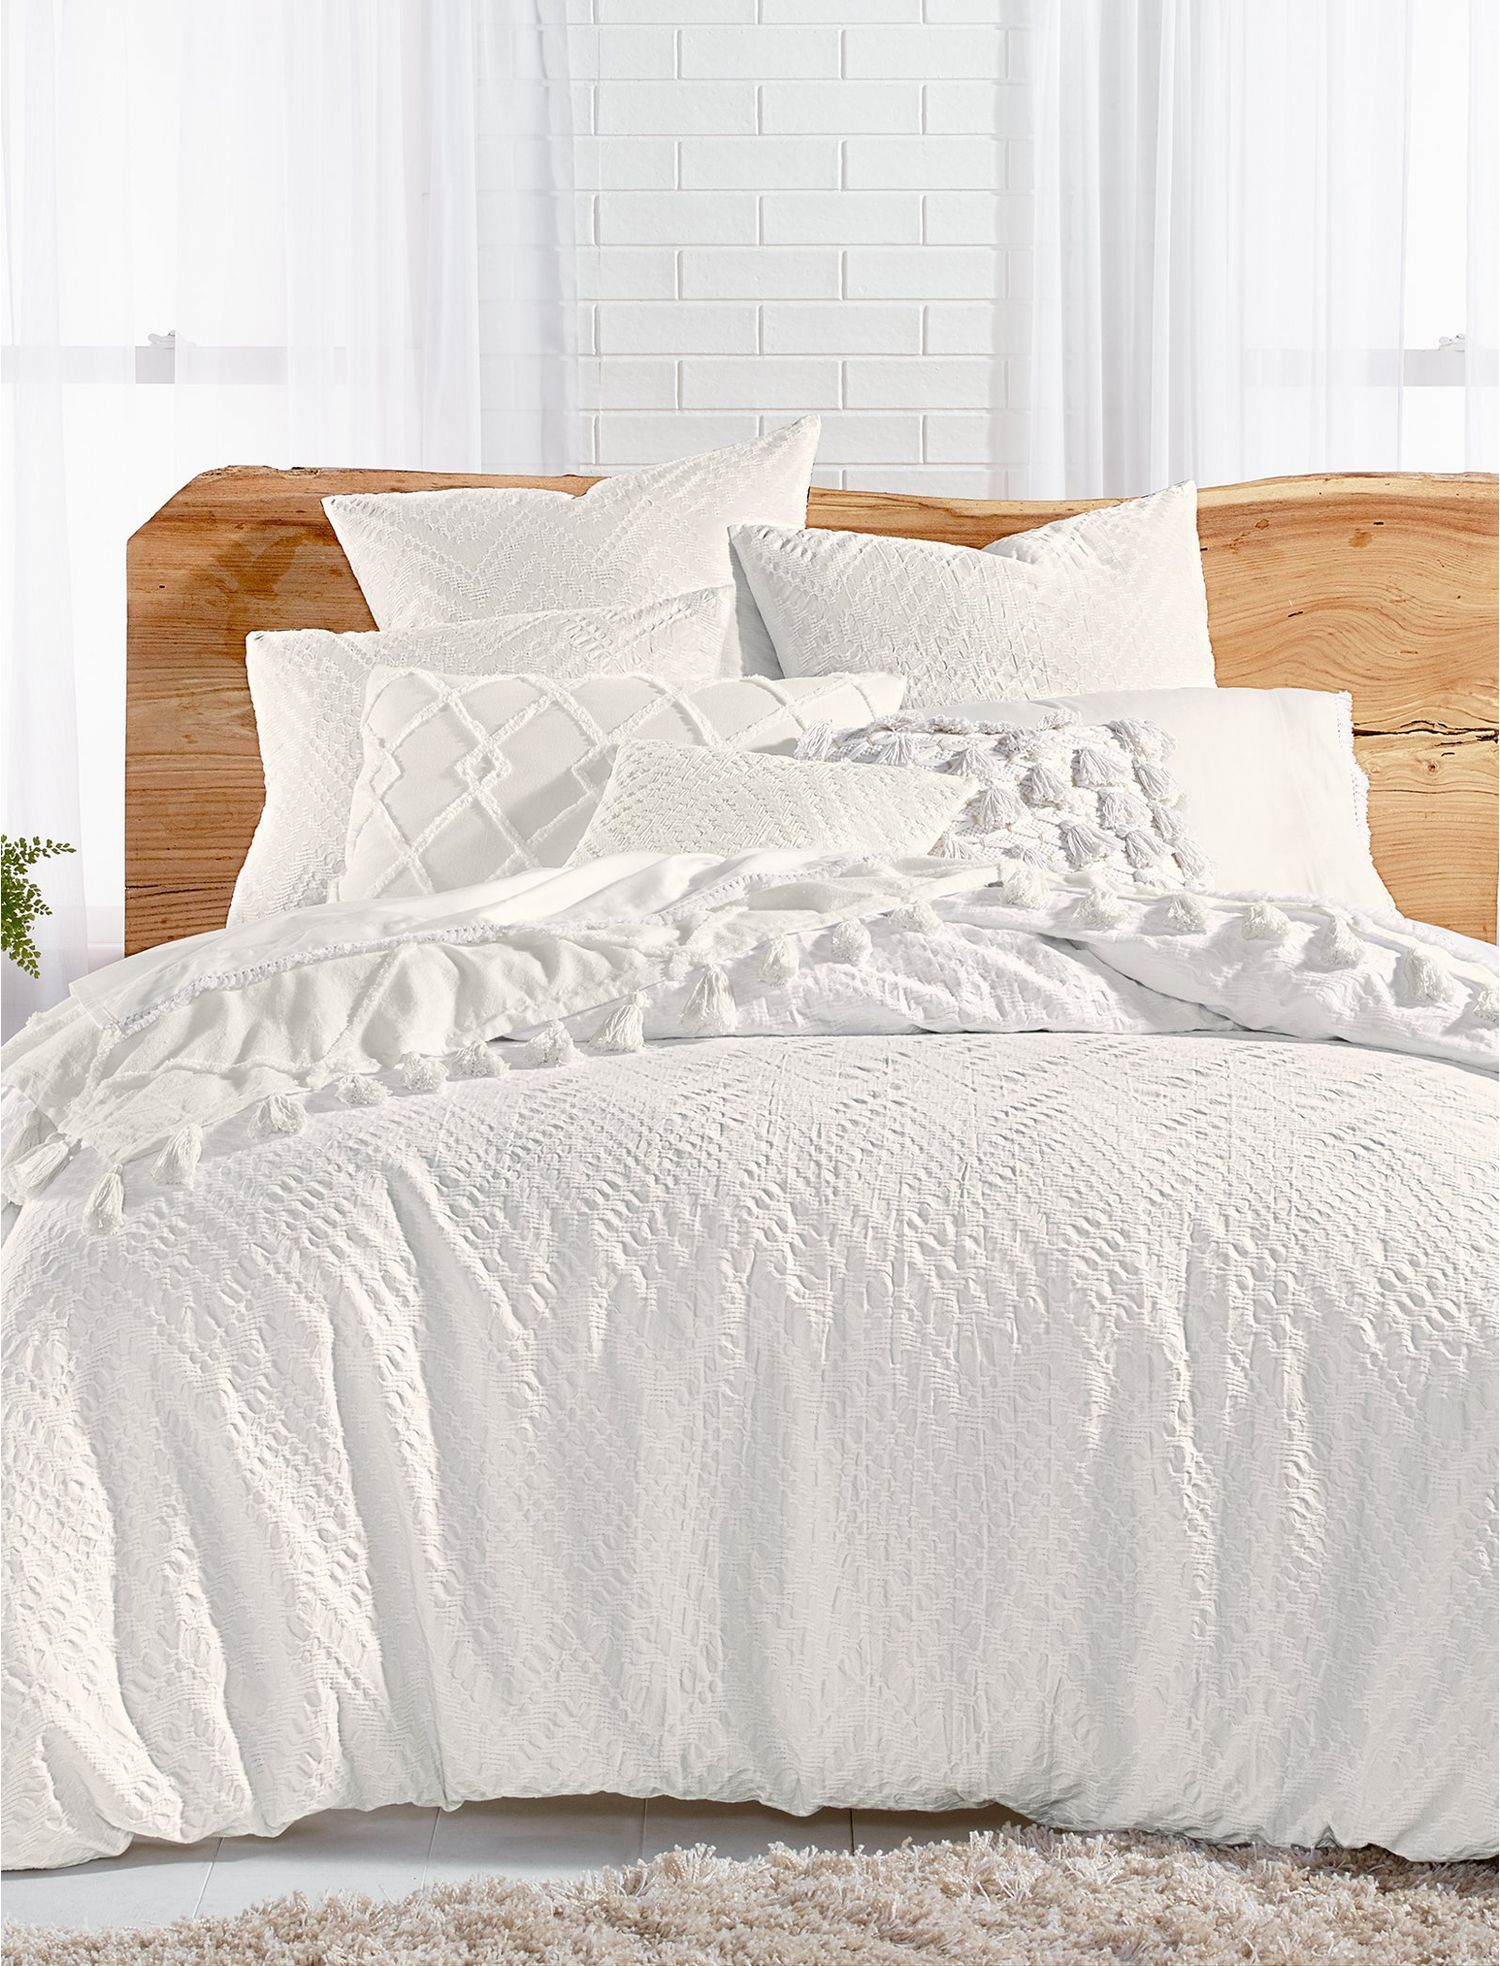 Lucky Brand Taos Matelasse Comforter Set In Natural, Size Queen